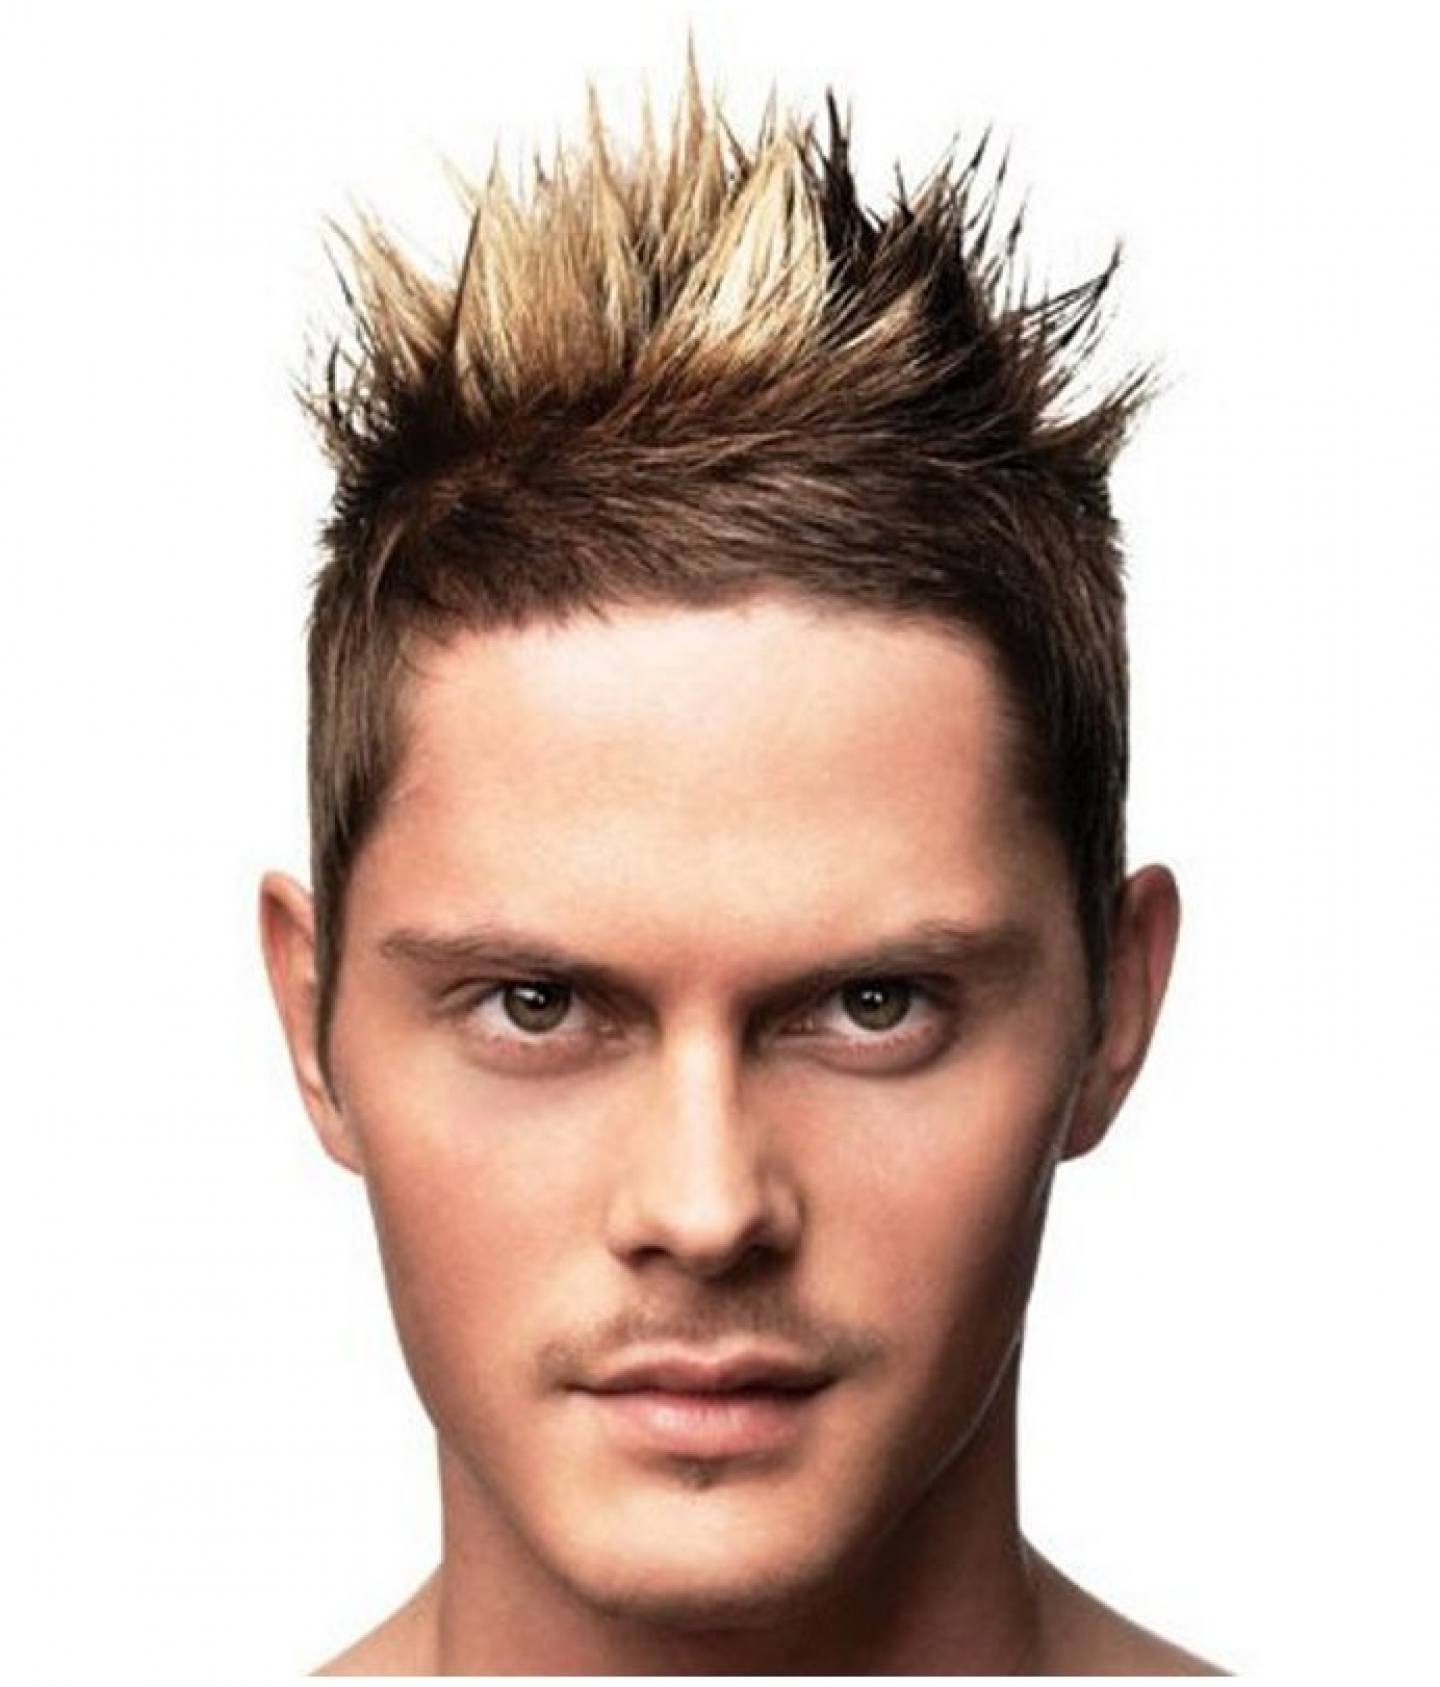 Straight Hair Hairstyles For Men's - Mens Craze